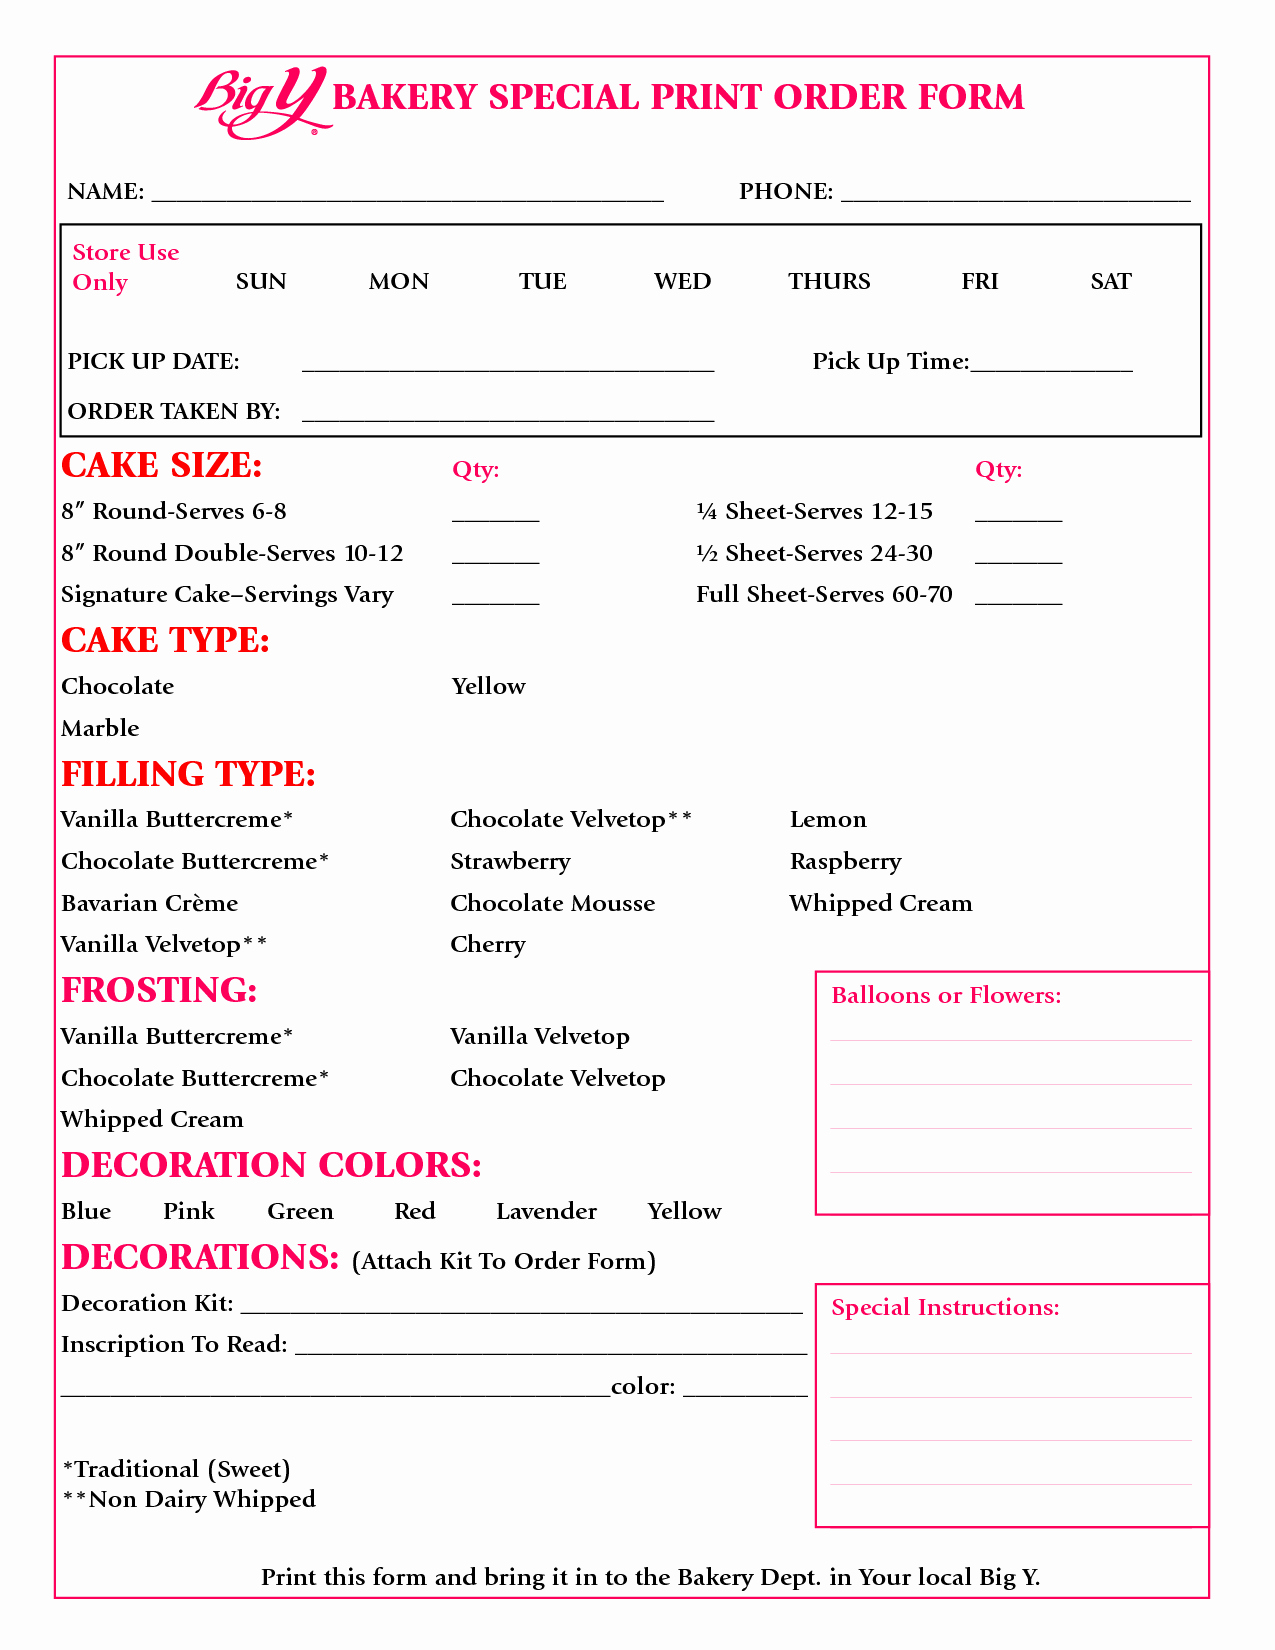 Cake order form Templates Unique Cake order form Google Search